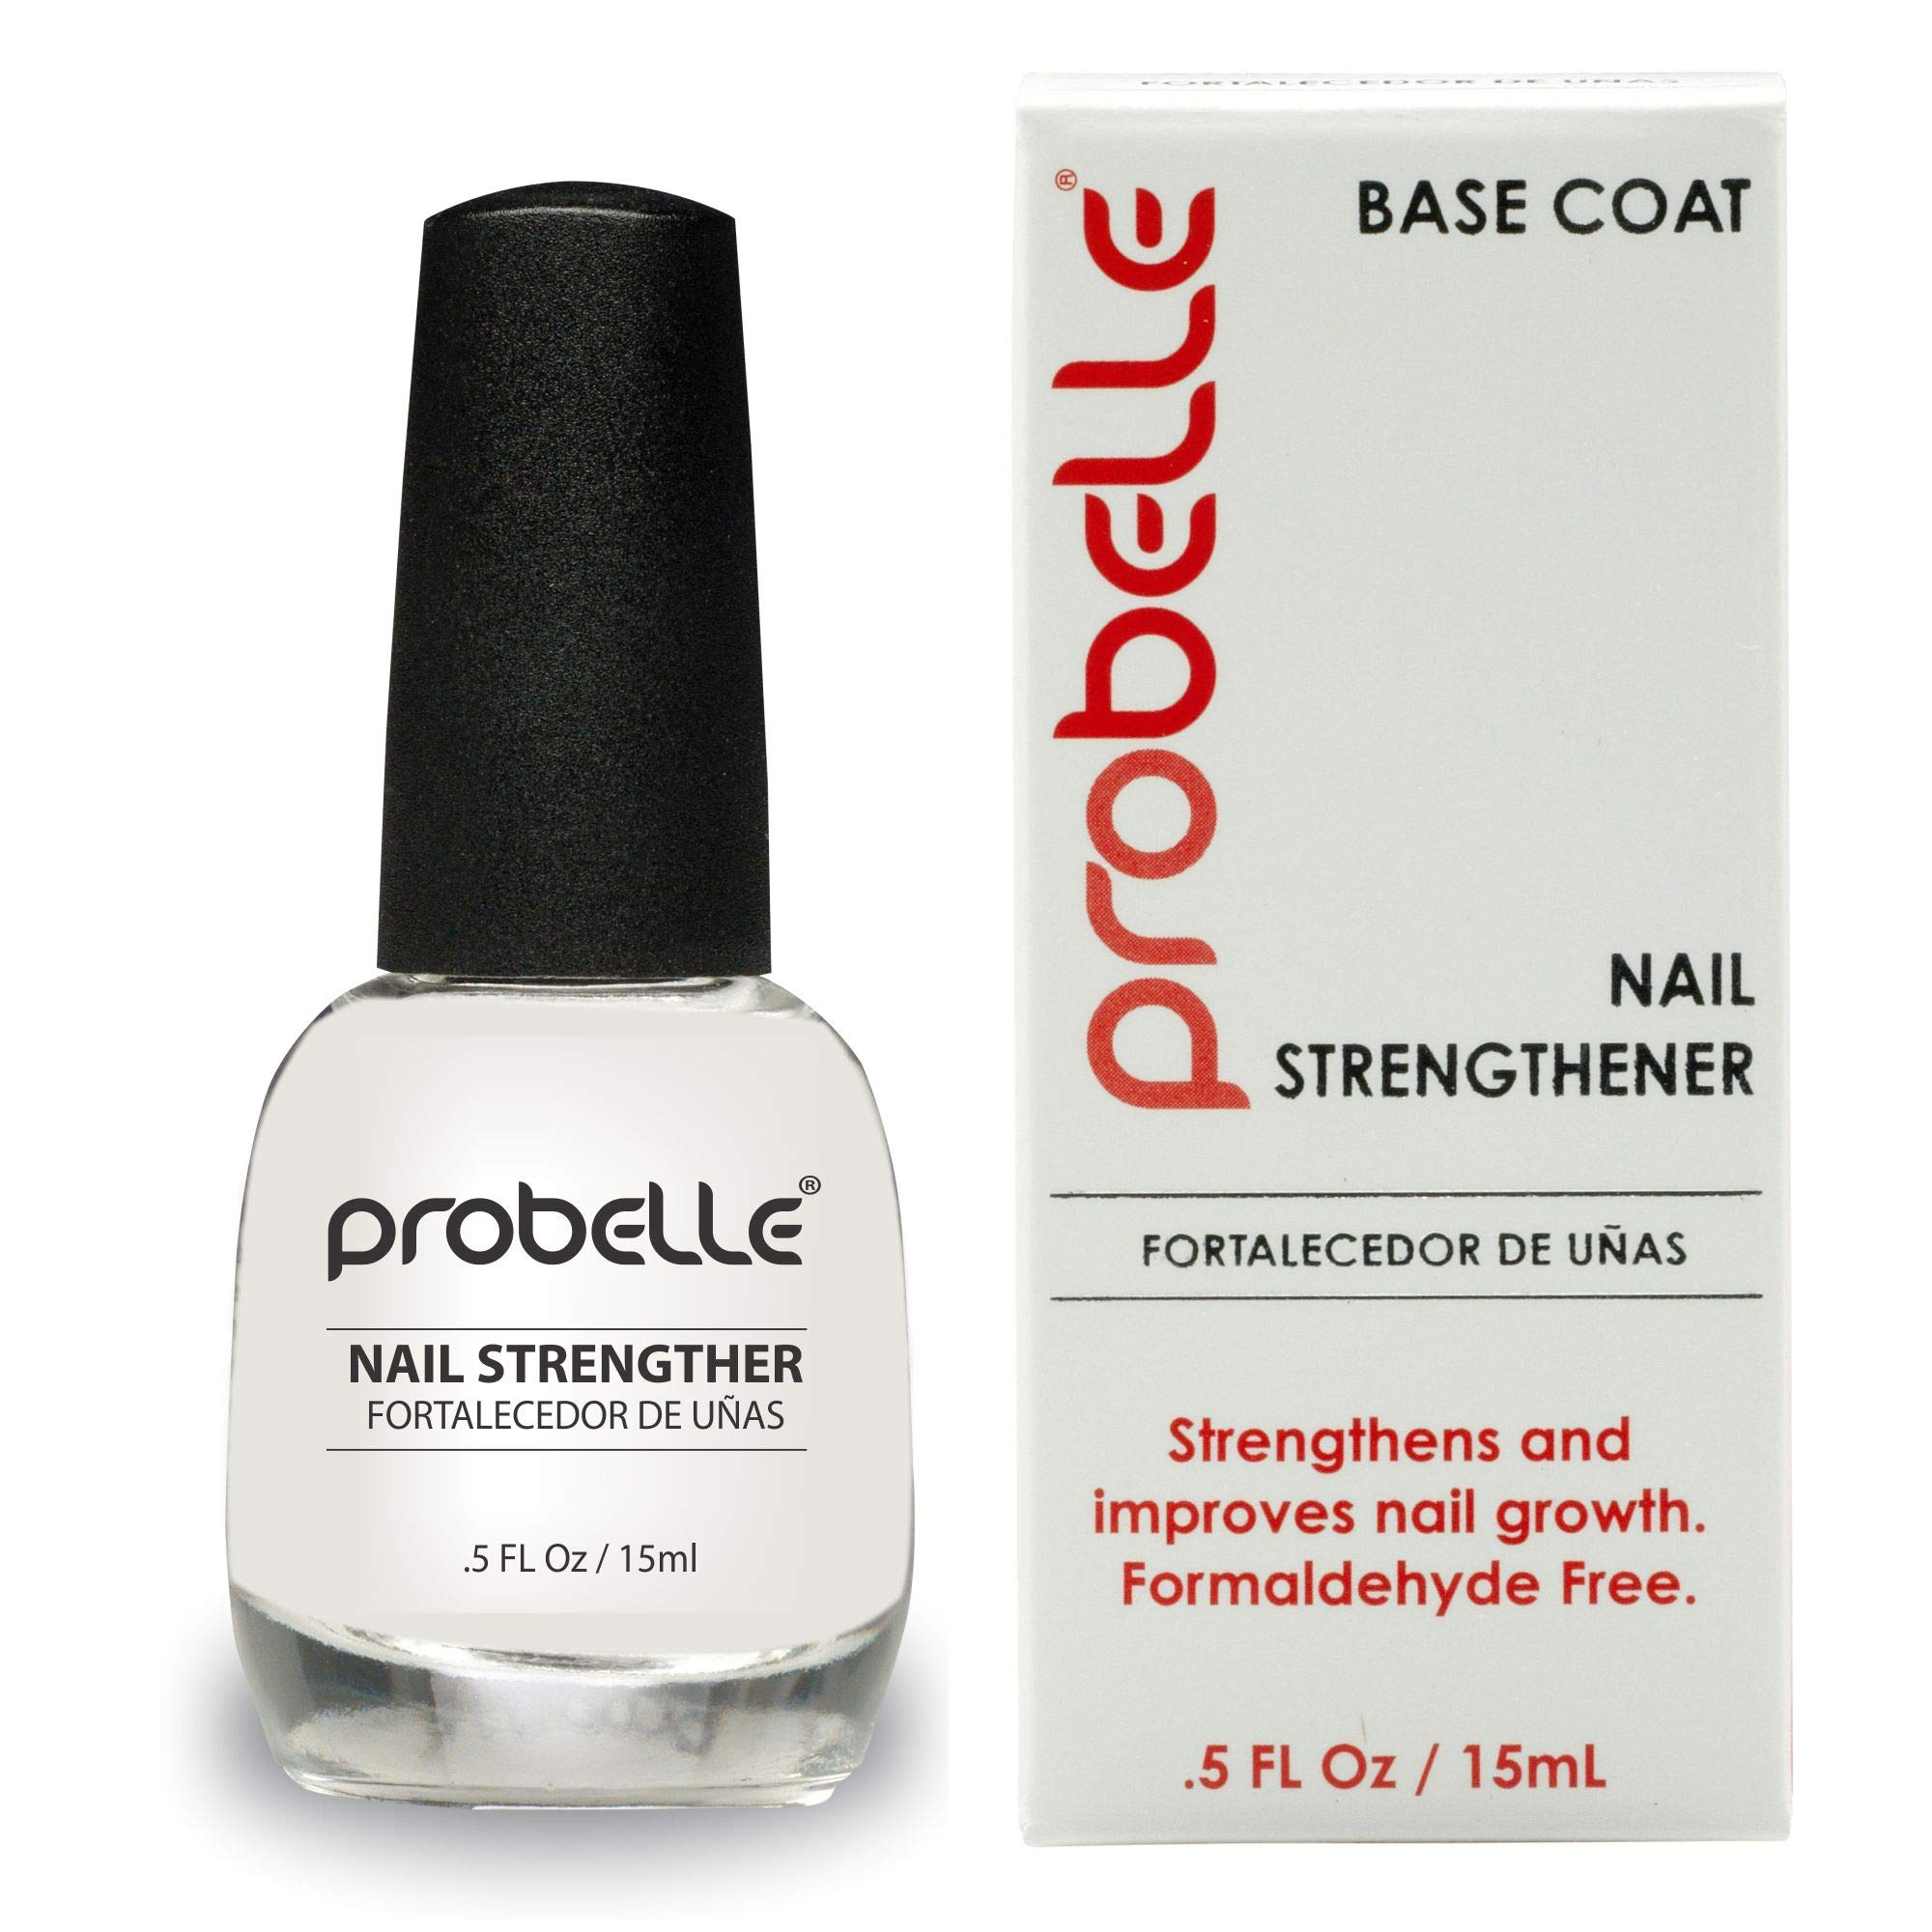 Probelle Nail Strengthener, Strengthens and Improves nail growth. Formaldehyde Free Formula, 0.5 oz by Probelle